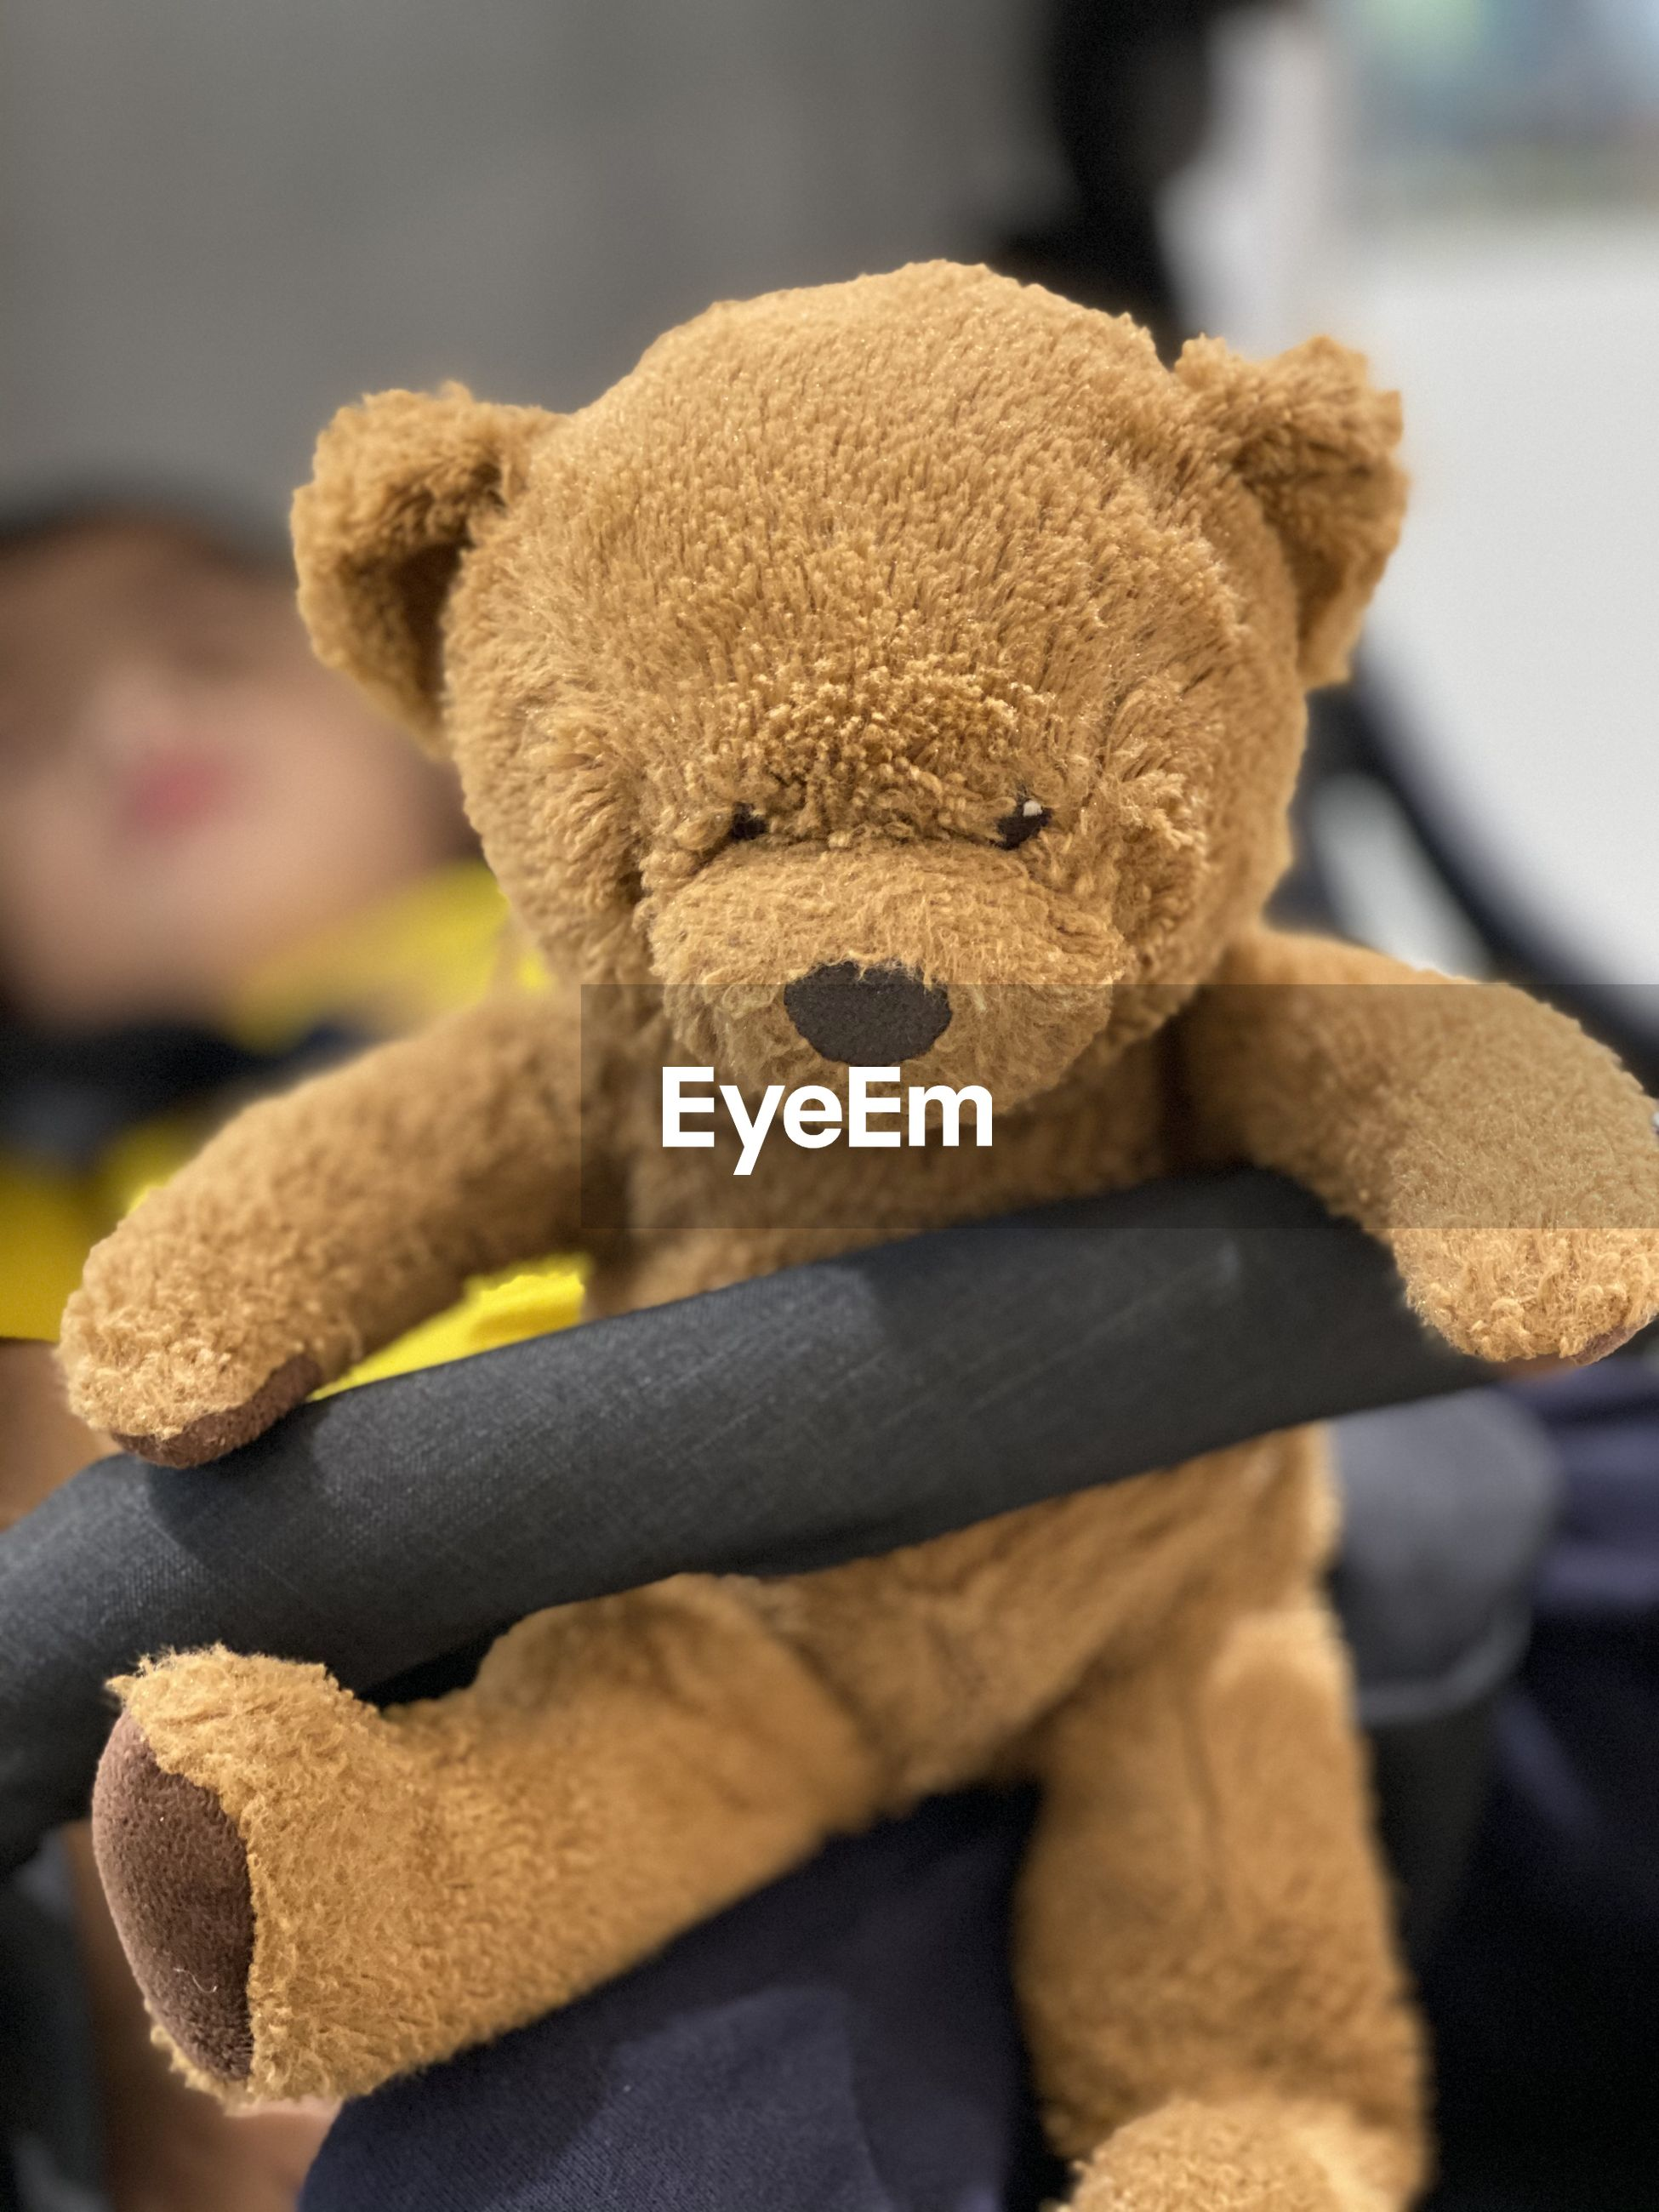 Close-up of stuffed toy on steering wheel in car